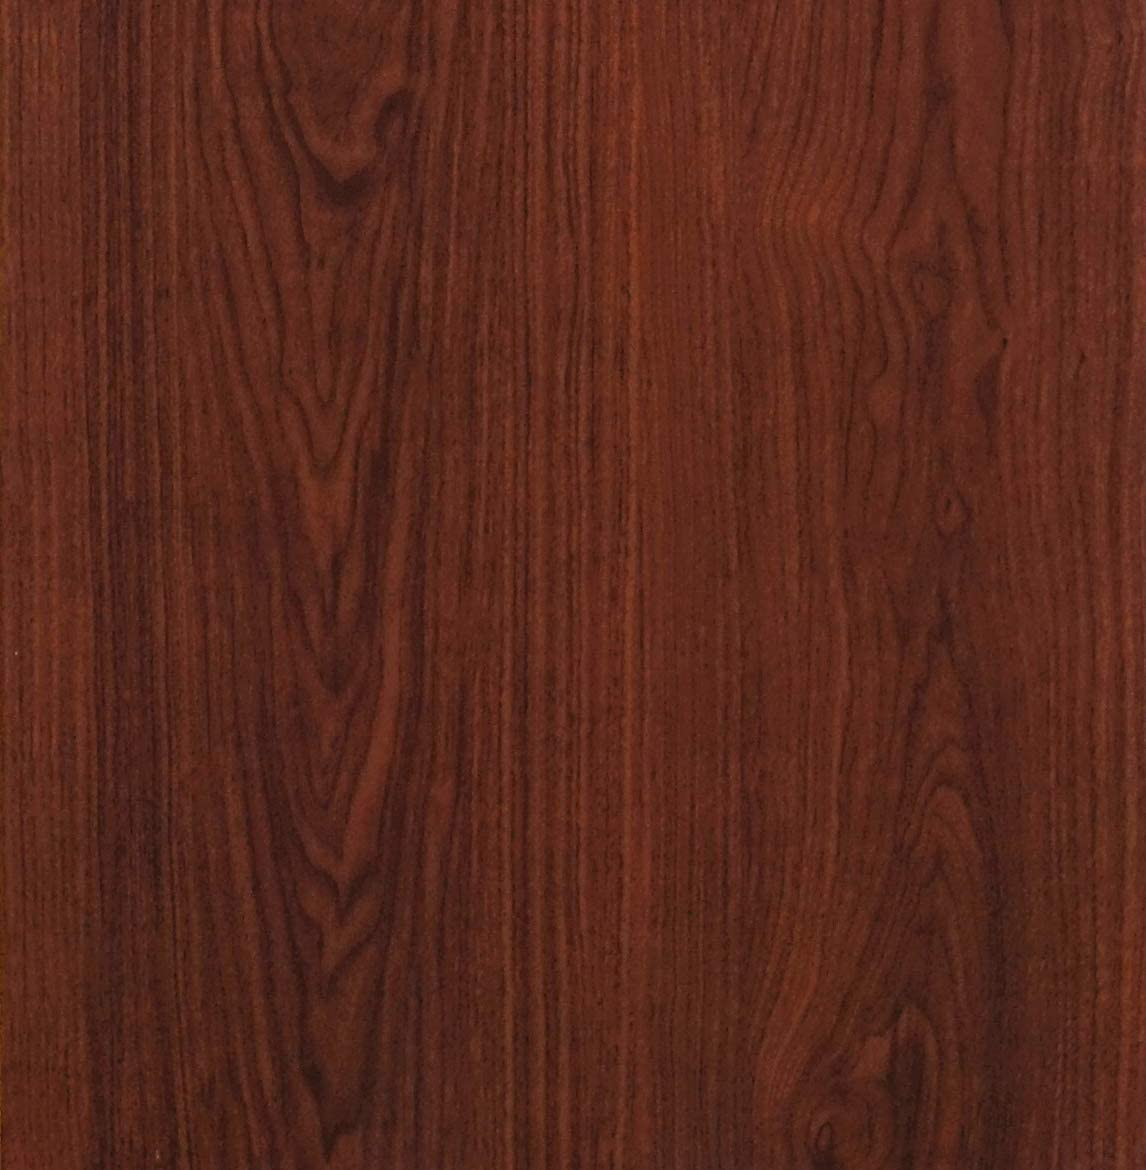 """Red Brown Wood Peel and Stick Wallpaper Wood Grain Shlef Liner Self Adhesive Film Removable Textured Wood Panel Decorative Wall Covering Faux Vinyl Shelf Drawer Liner Cabinet Countertop 78.7""""x17.7"""""""